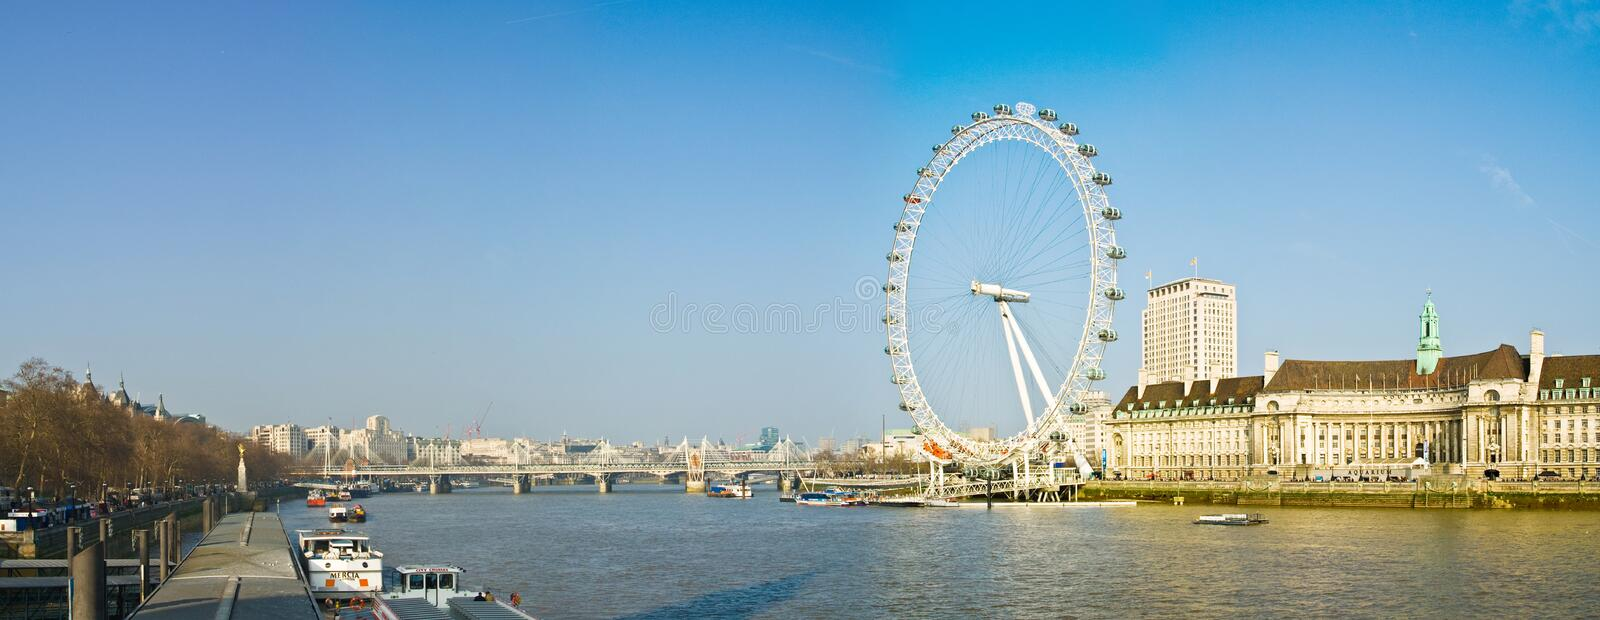 Download London Eye editorial stock photo. Image of high, british - 24331468